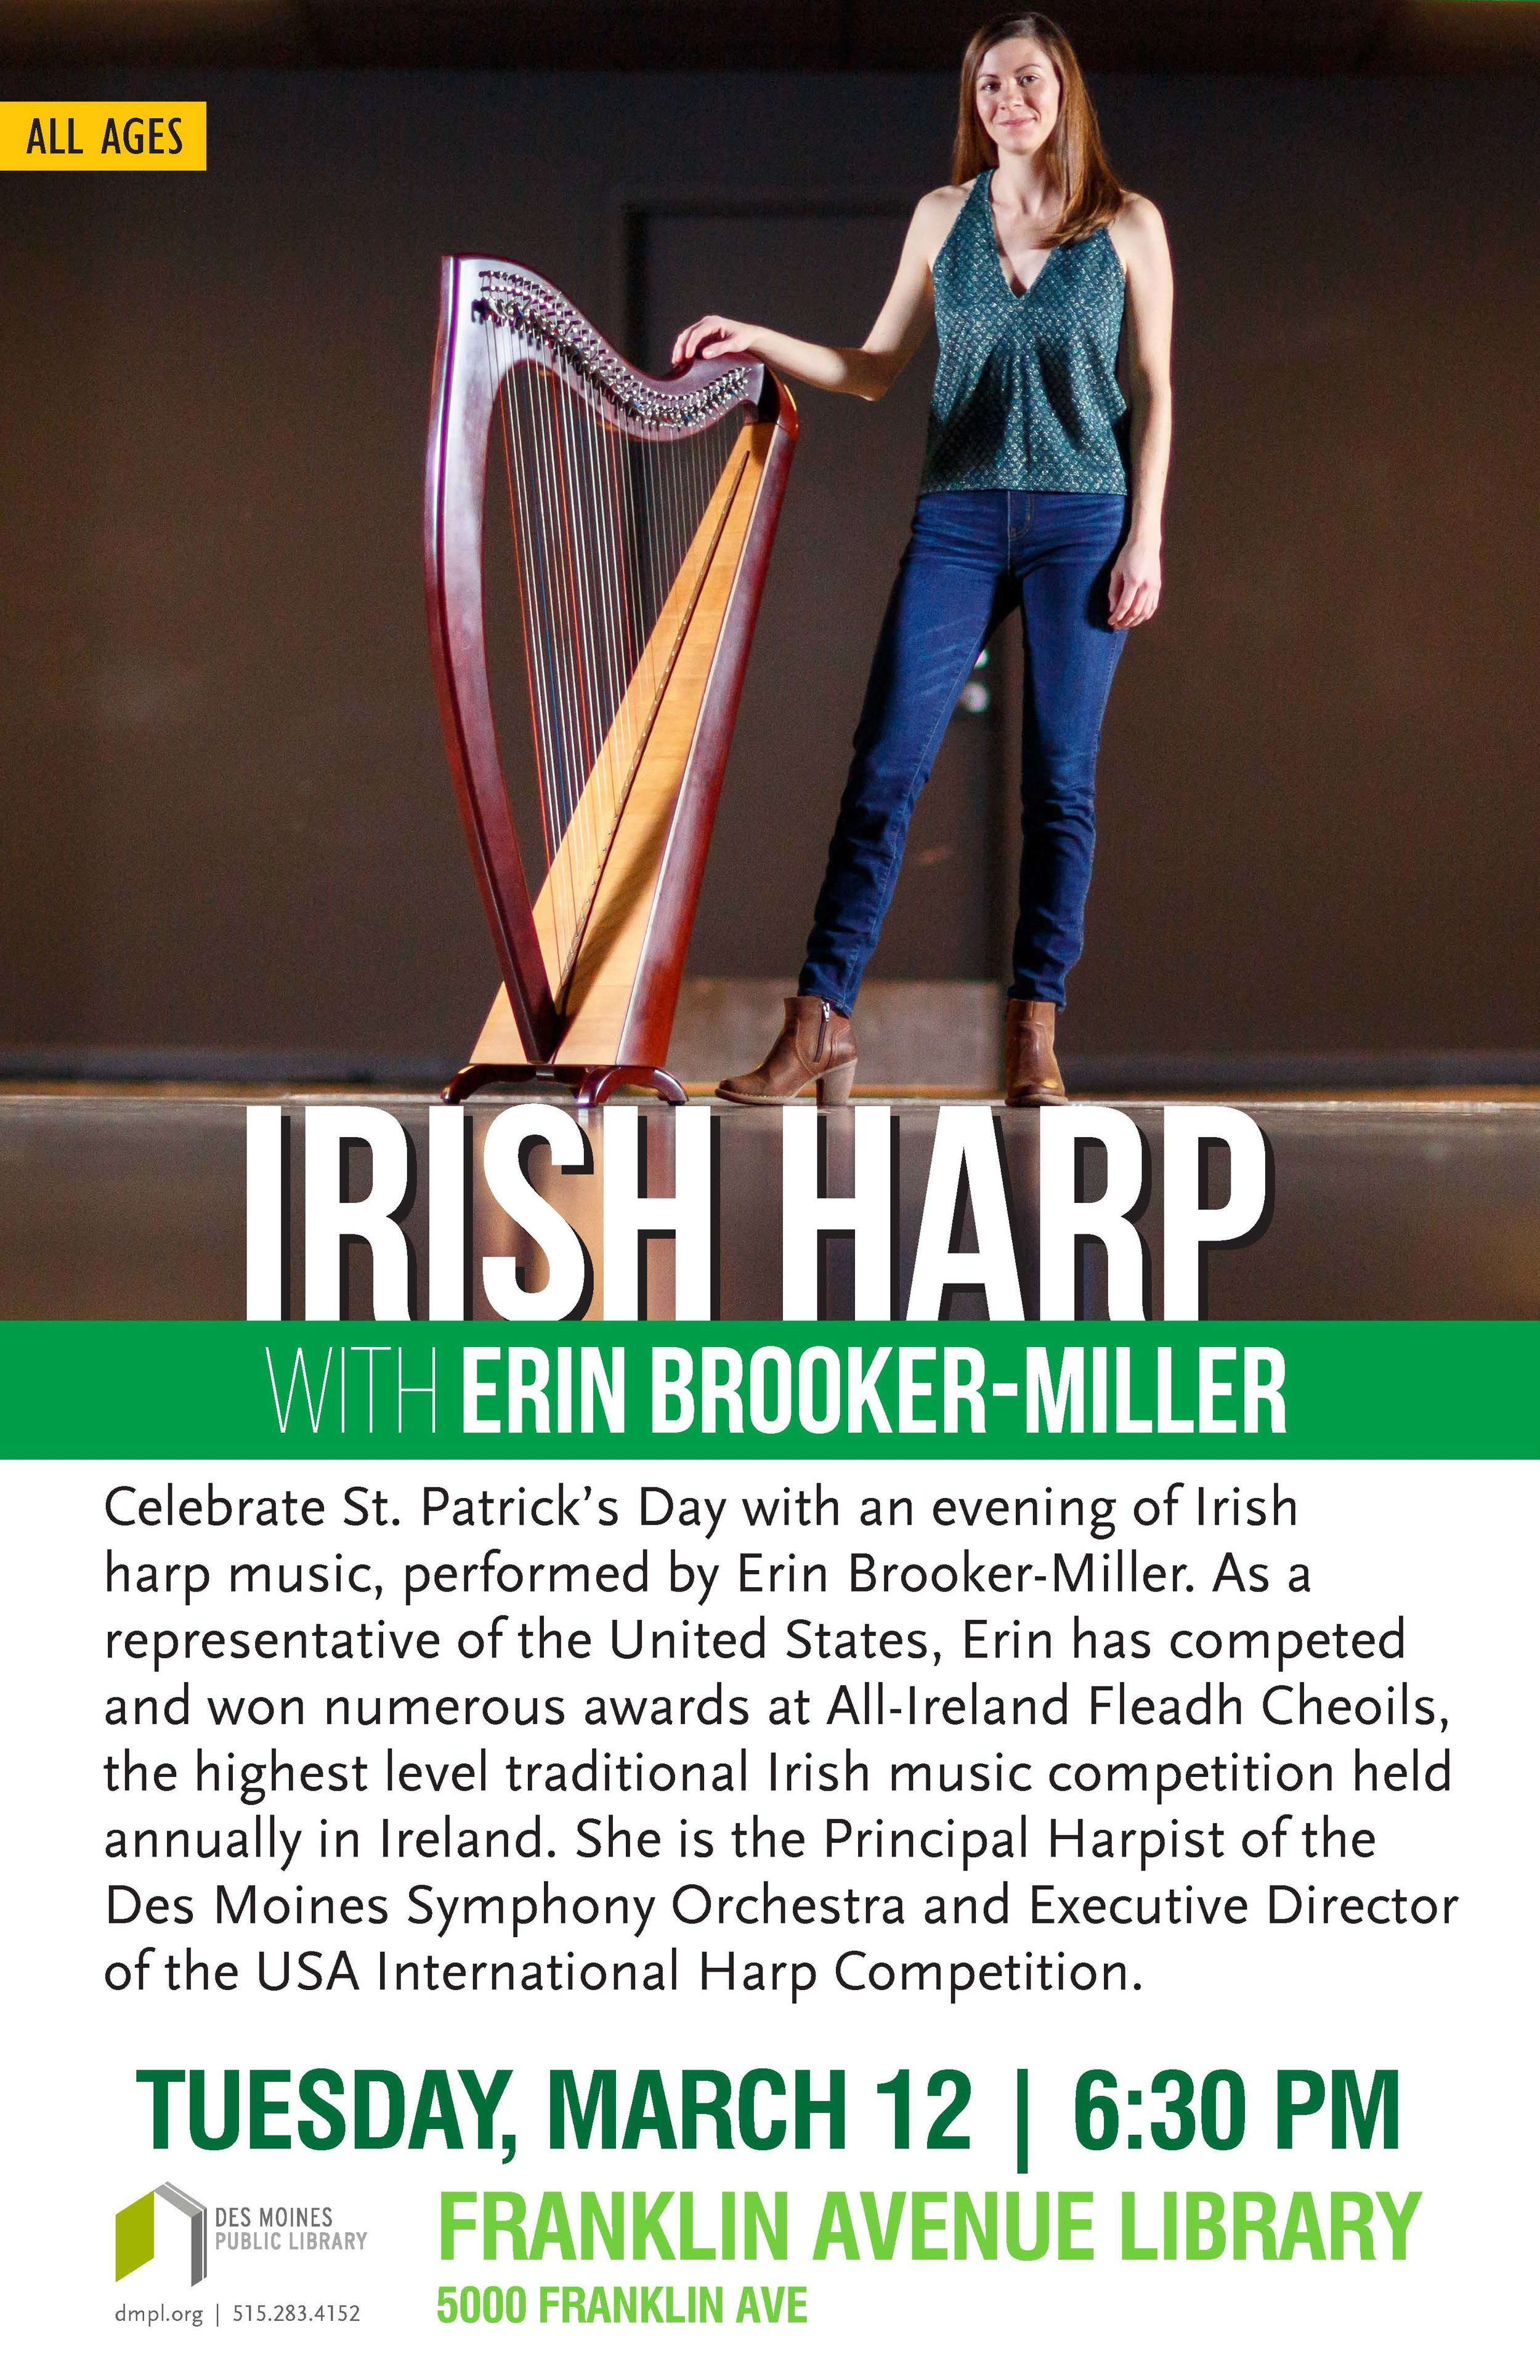 FR IRISH HARP WITH ERIN BOOKER-MILLER (004).jpg